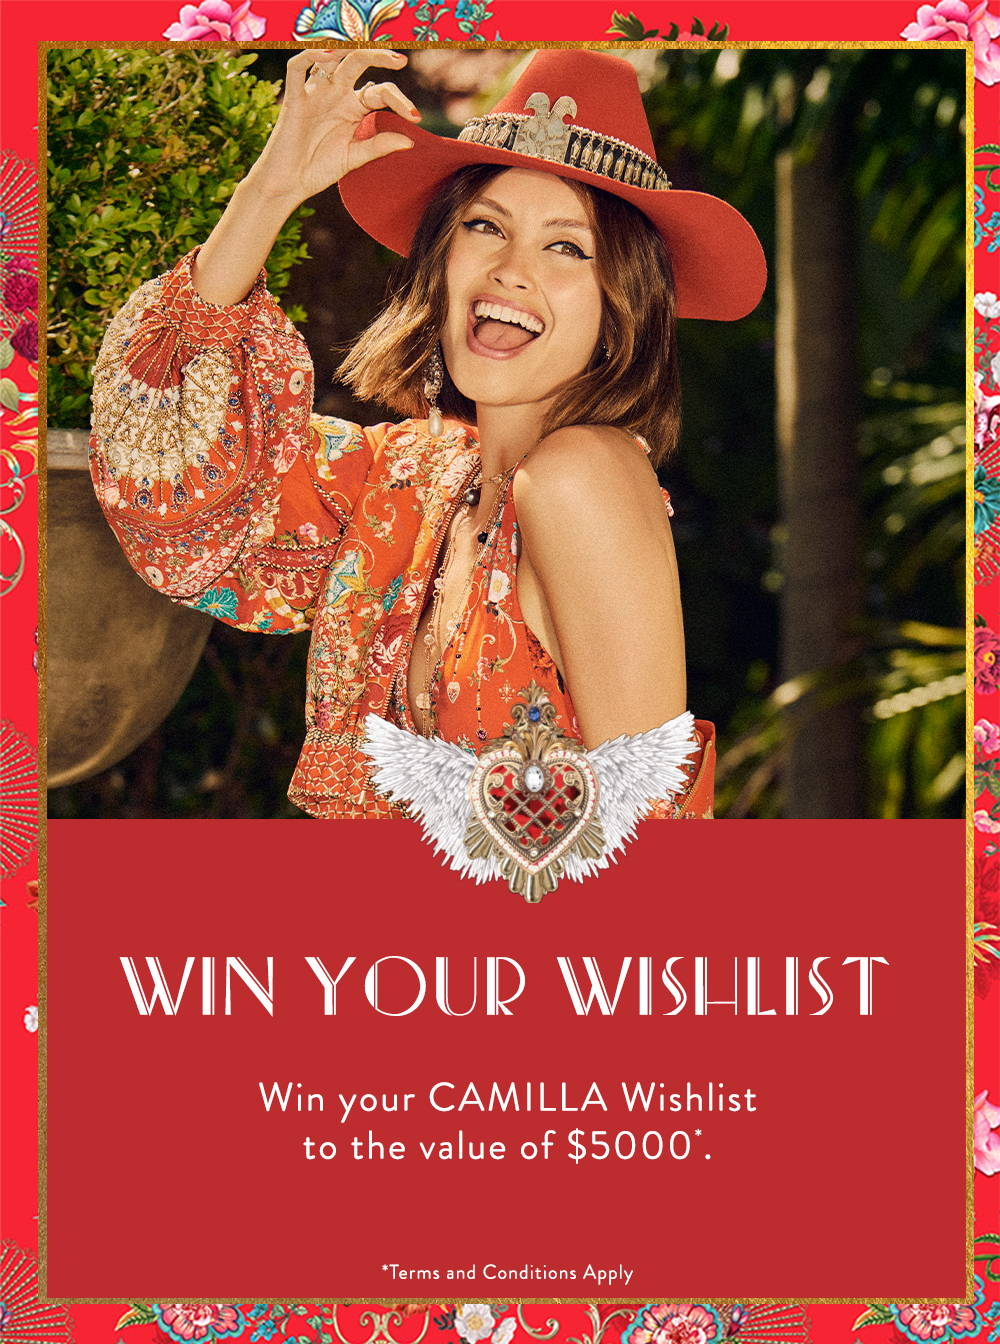 Win Your Wishlist | Win your CAMILLA wishlist to the value of $5000